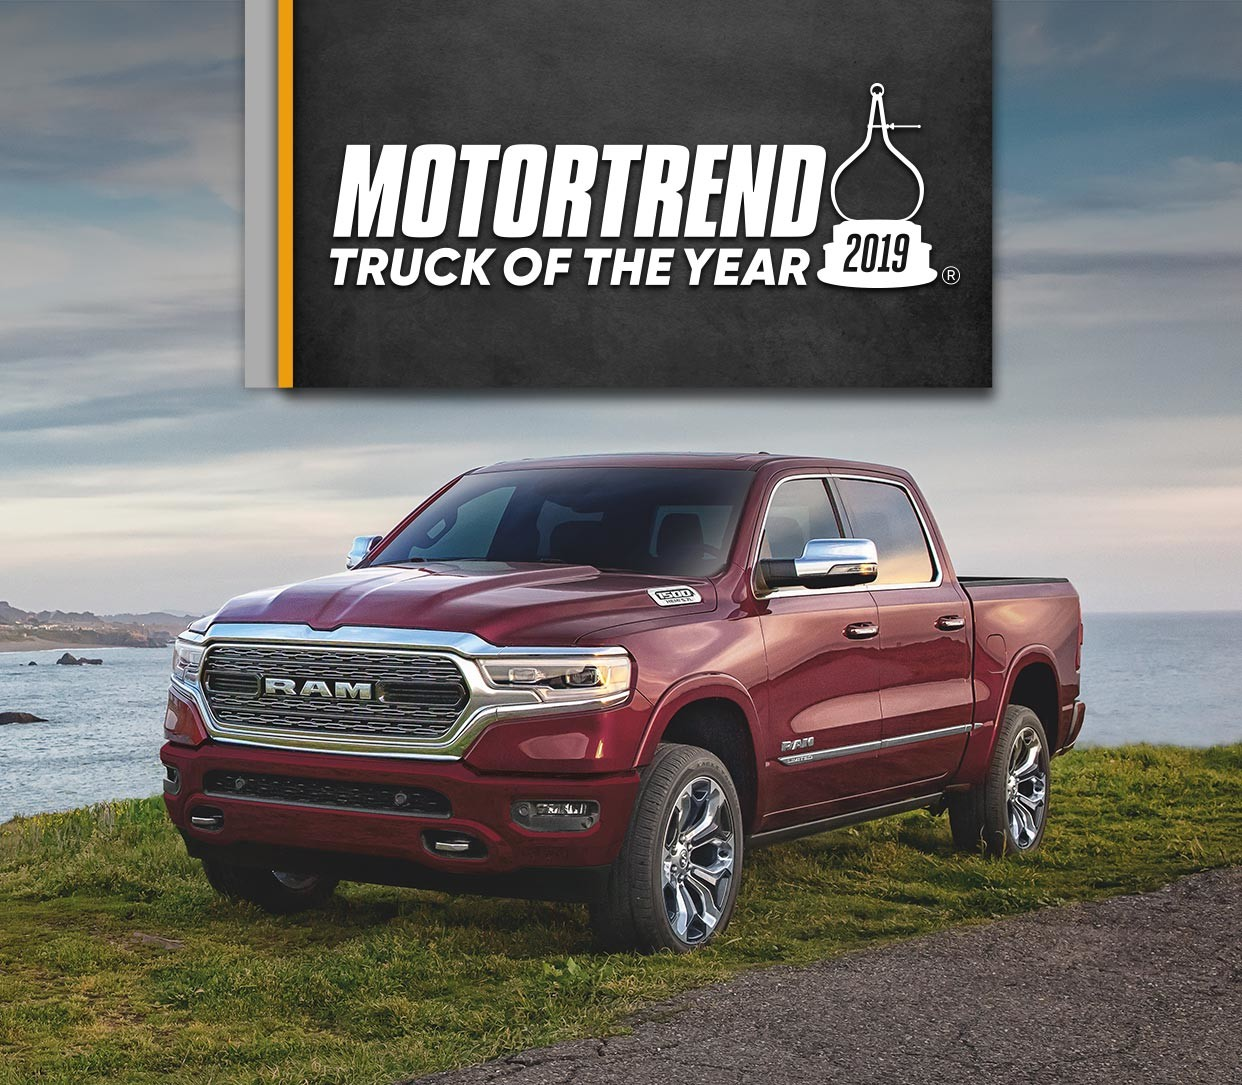 MOTORTREND UNANIMOUSLY NAMED THE ALL-NEW RAM 1500. THE 2019 TRUCK OF THE  YEAR